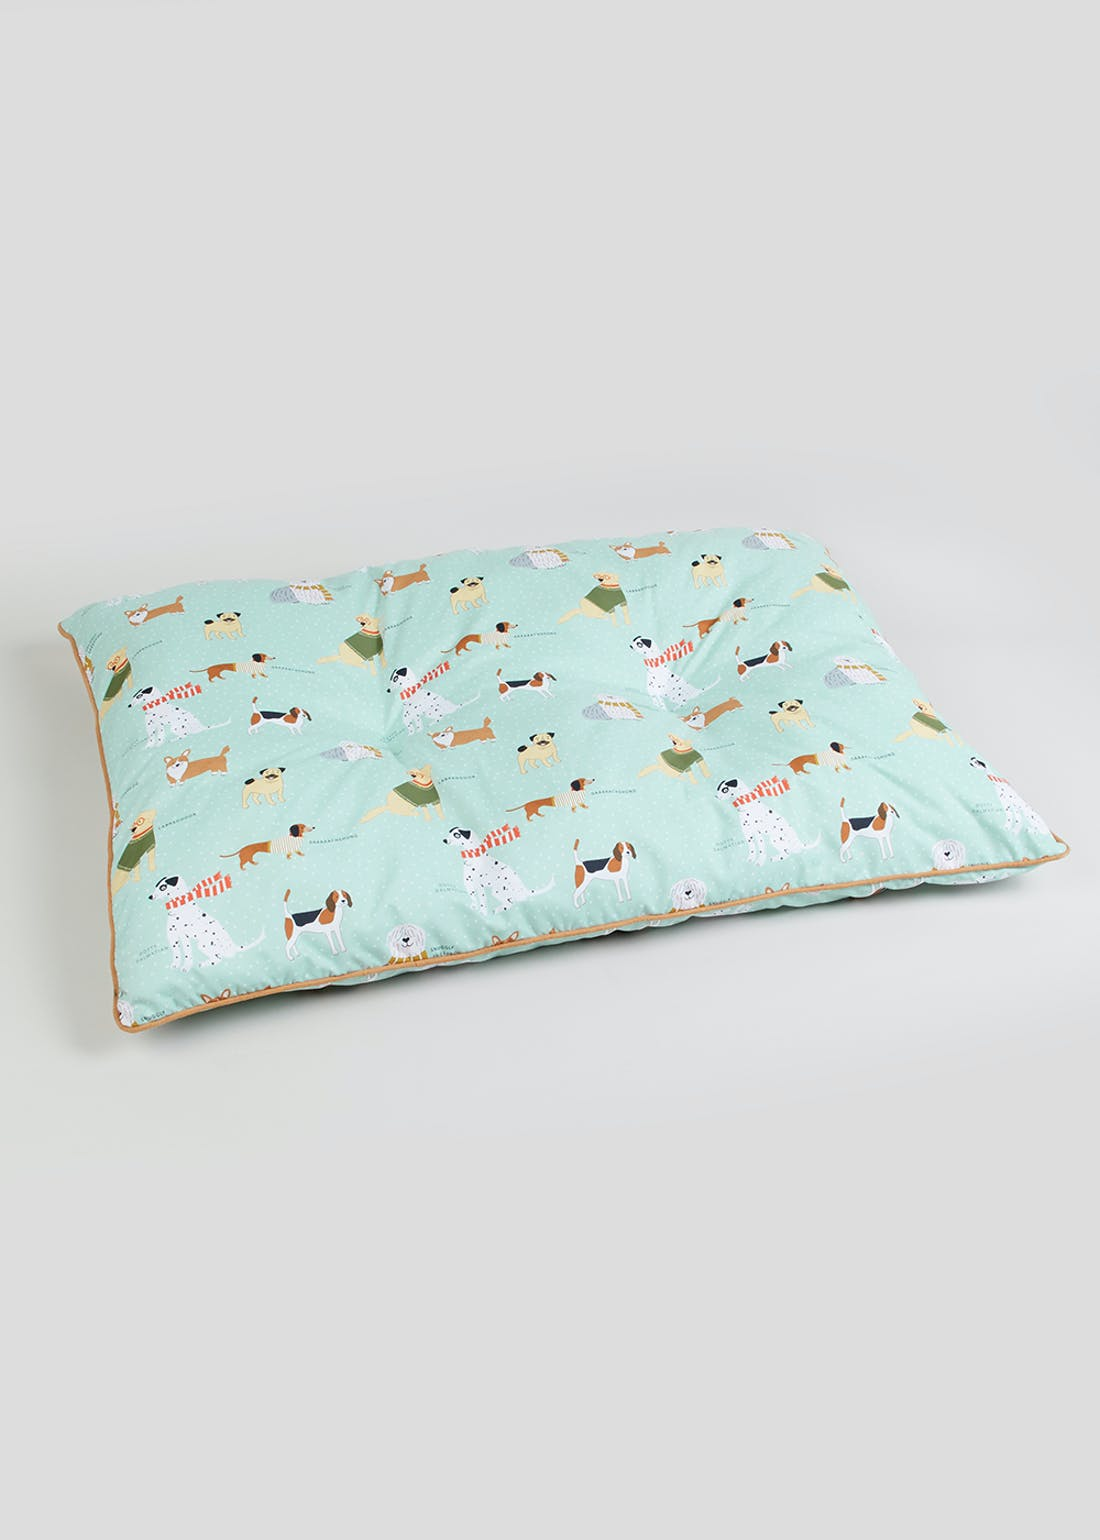 Dog Print Large Pet Bed (100cm x 70cm x 10cm)